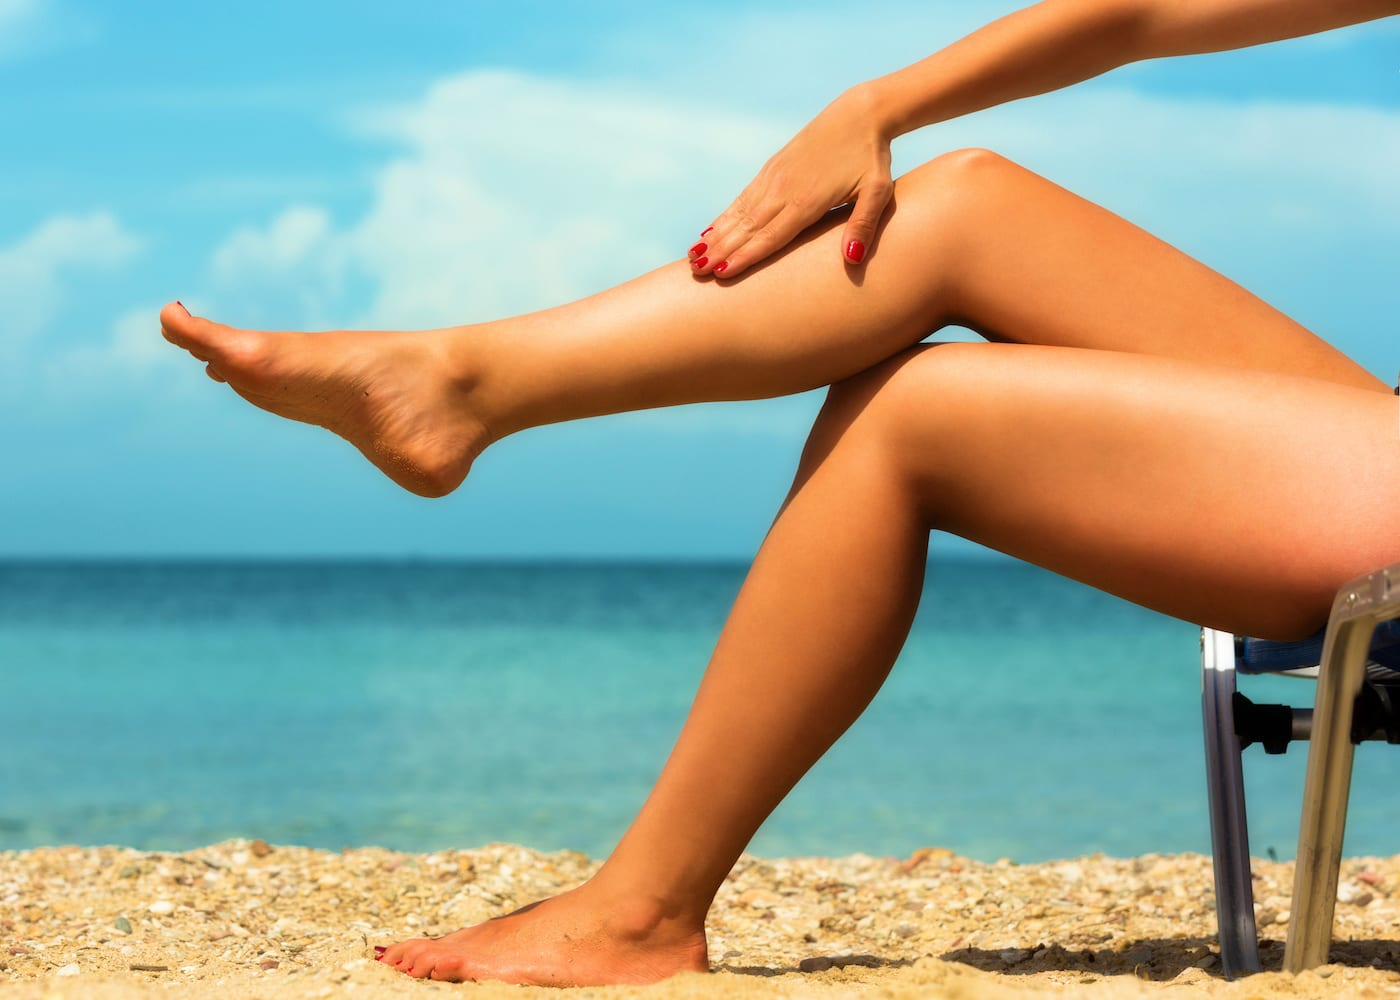 Hair removal salons in Singapore: Where to go for waxing, threading and laser/IPL